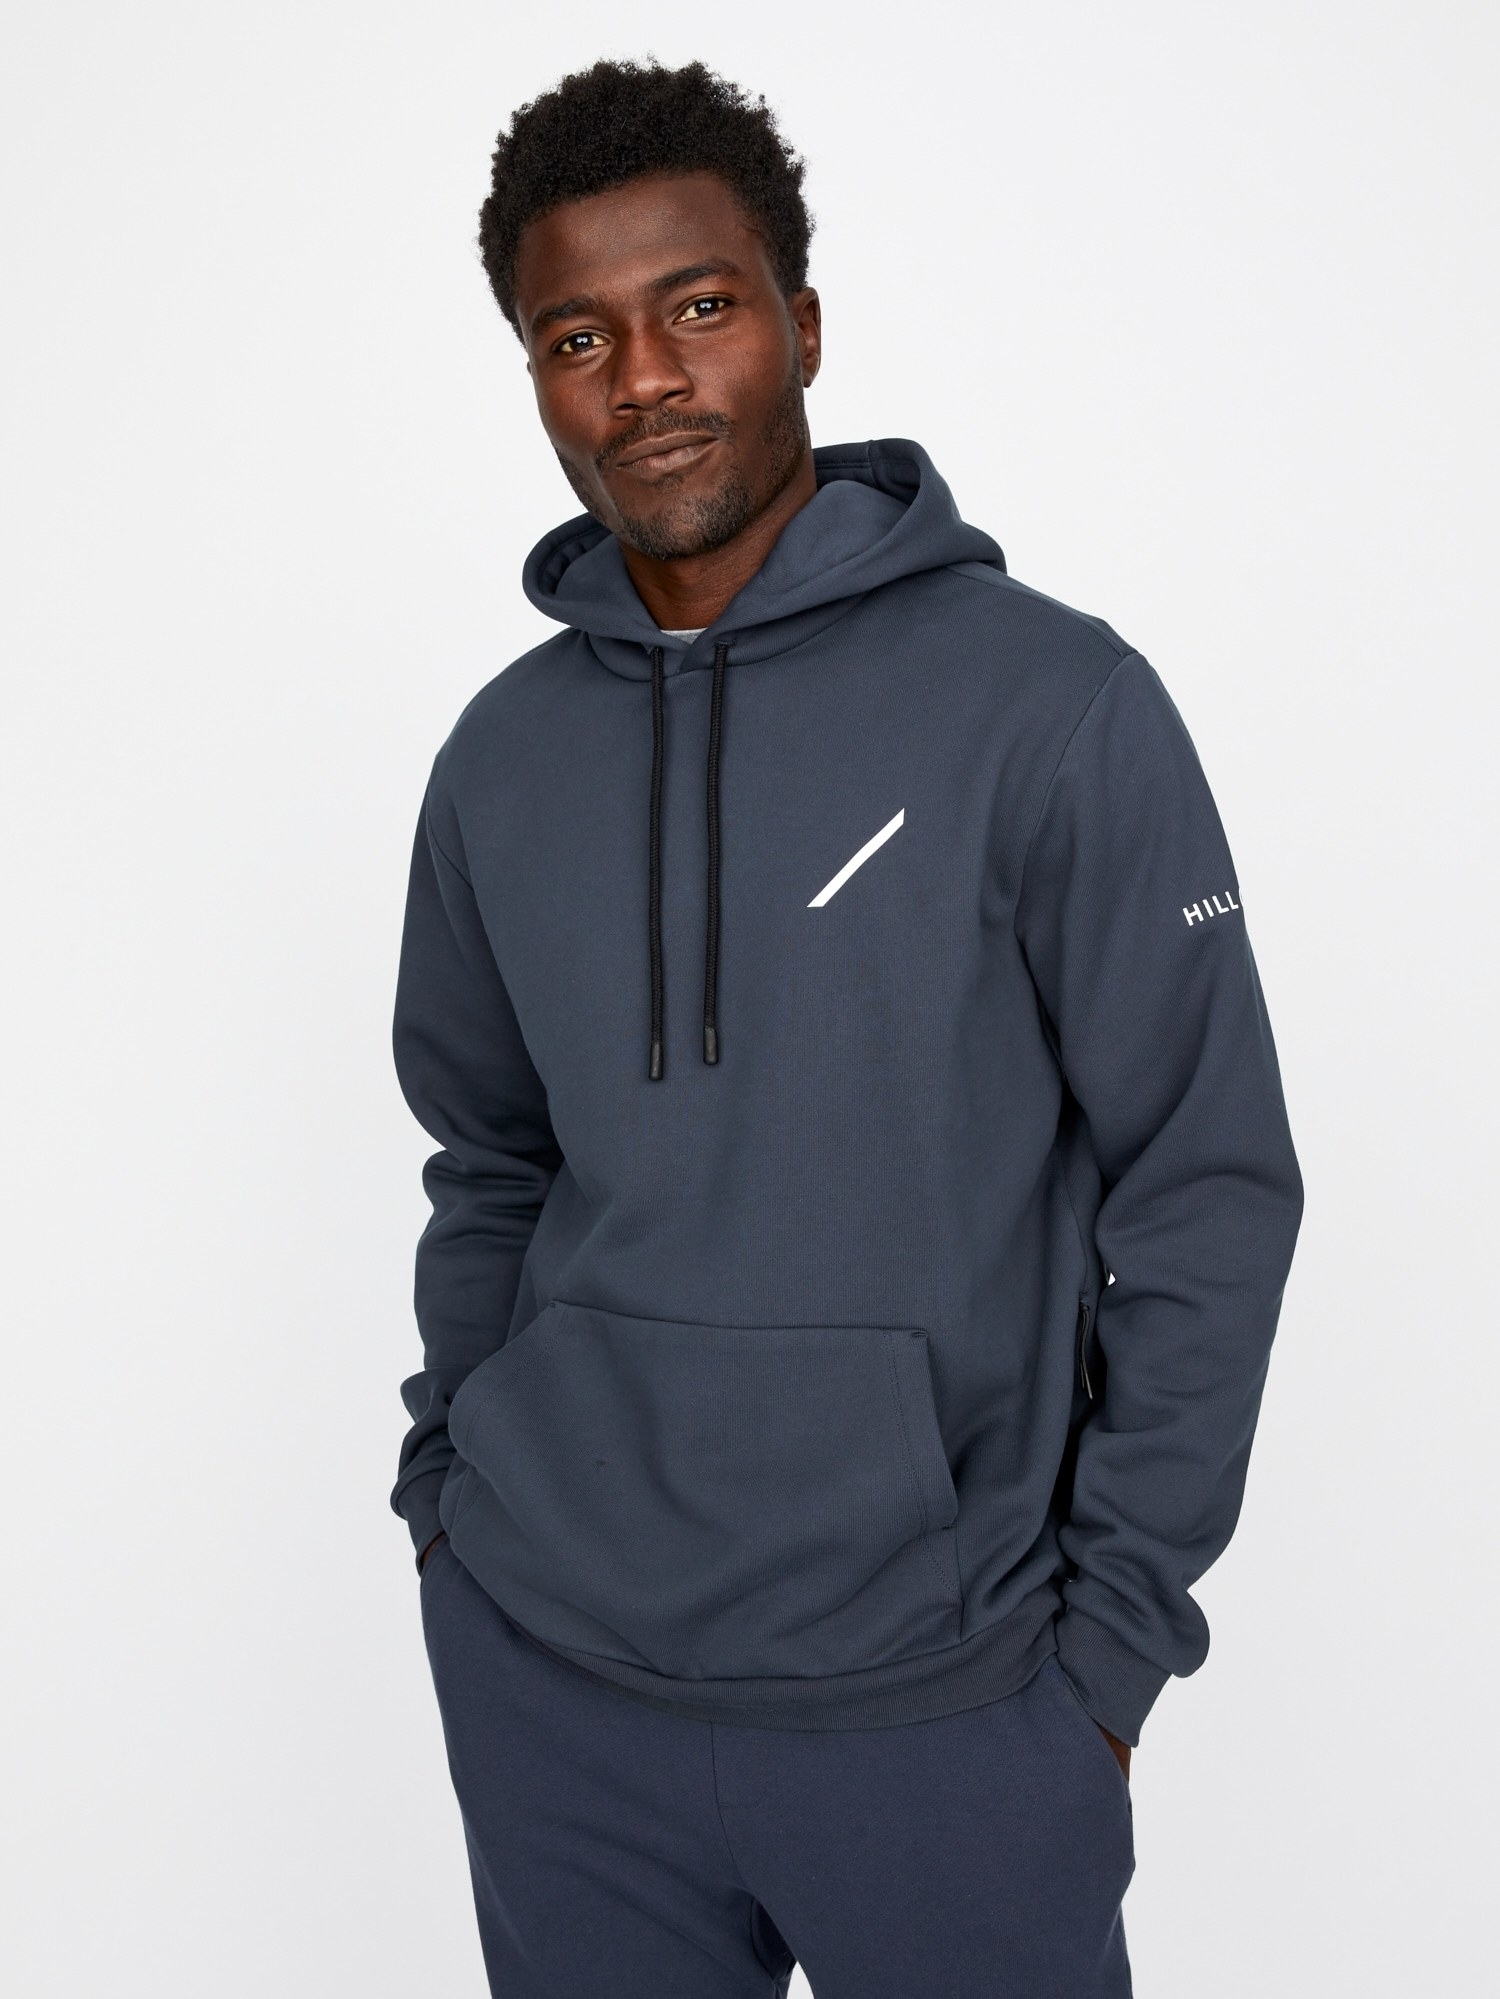 Model wearing the hooded sweatshirt with a white line across the left side of the chest and logo on the arm in blue with black drawstring